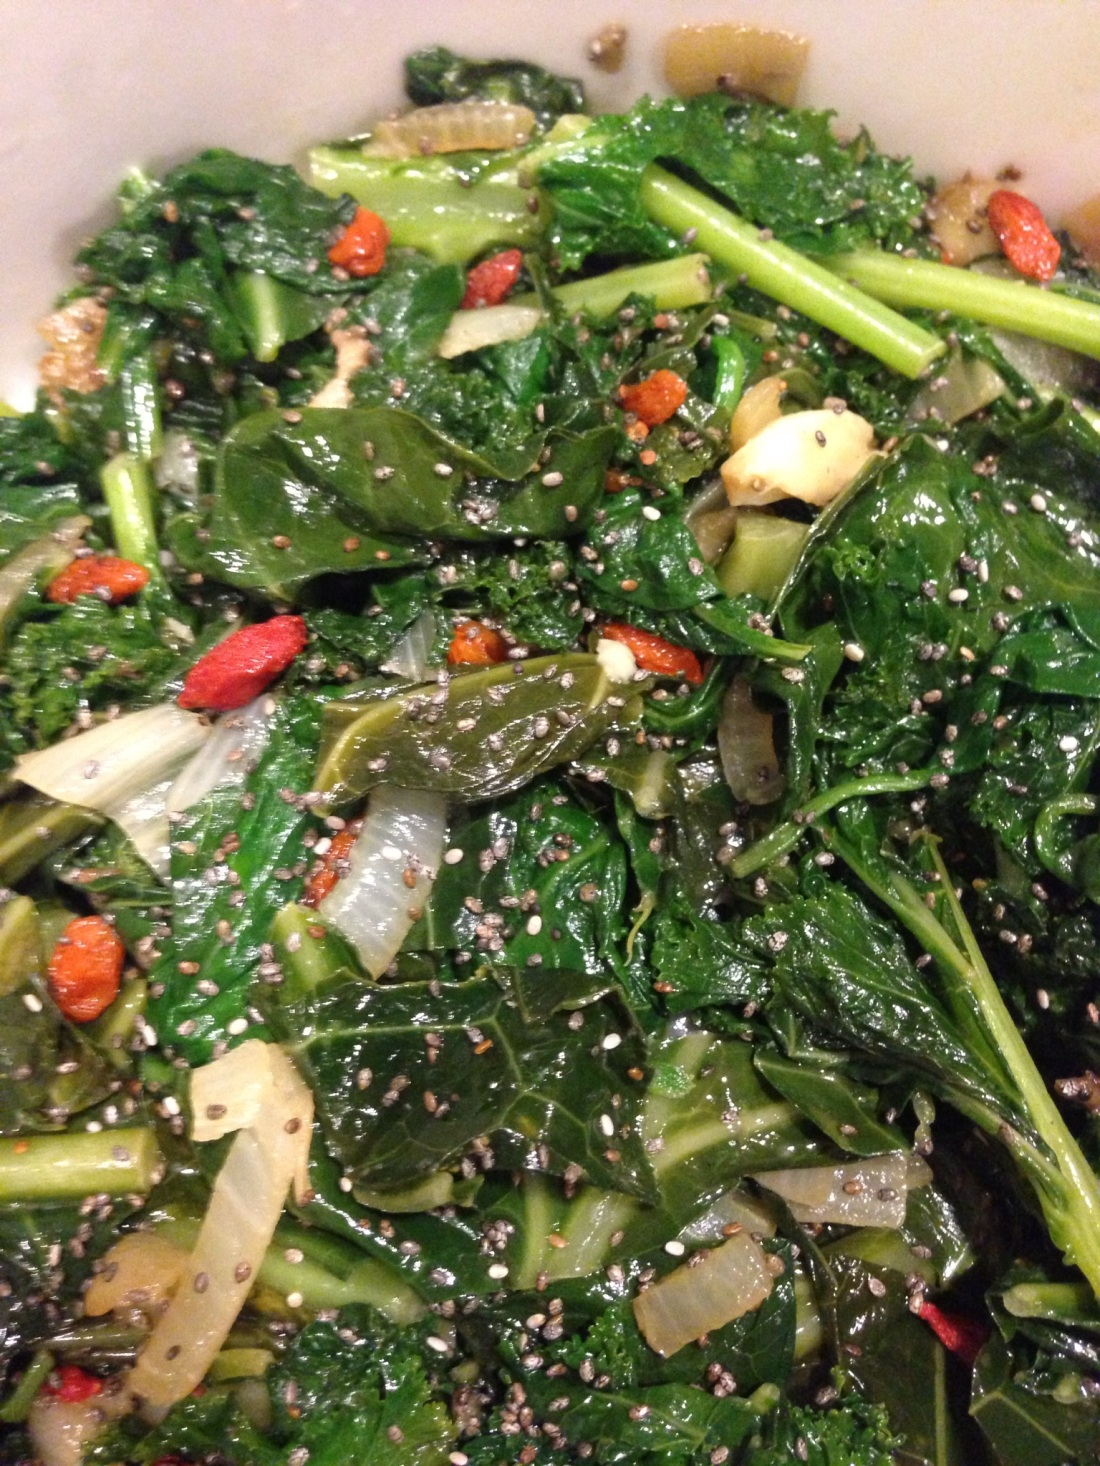 Spinach, Kale, and Collard Greens with Goji Berries and Chia Seeds